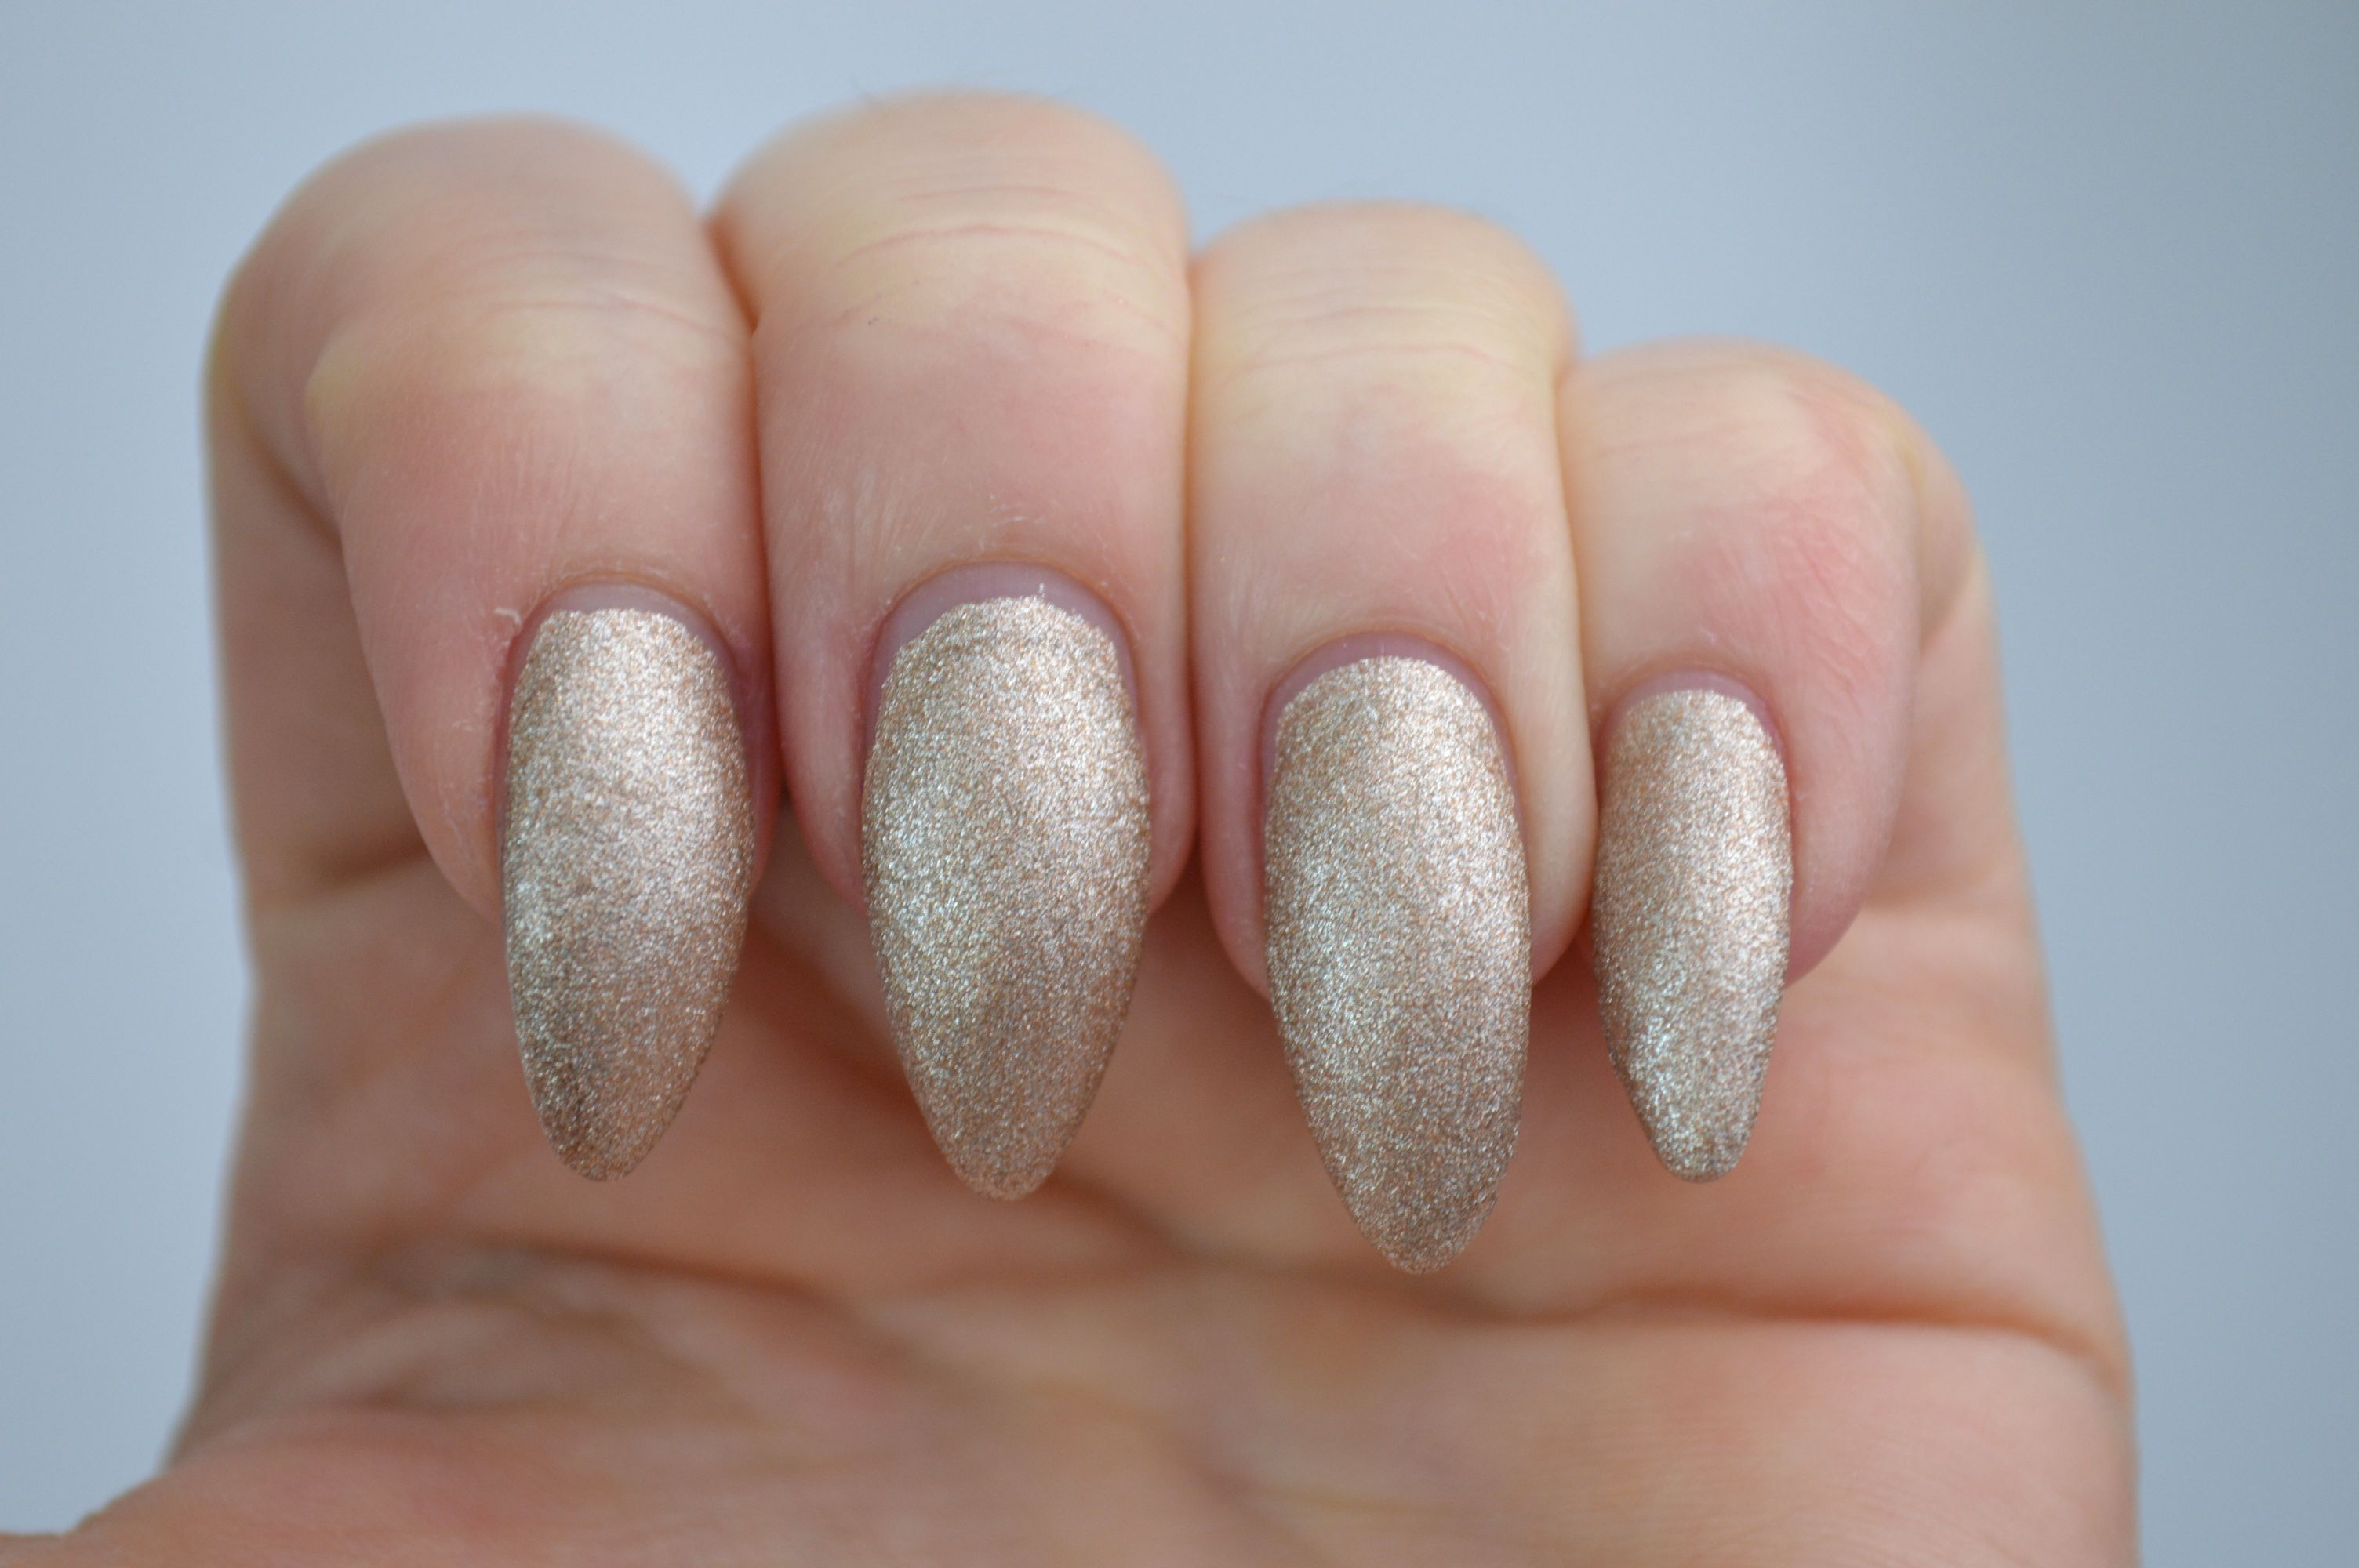 Sally_Hansen_Satin_Glam_Go_Gold_Nailpolish